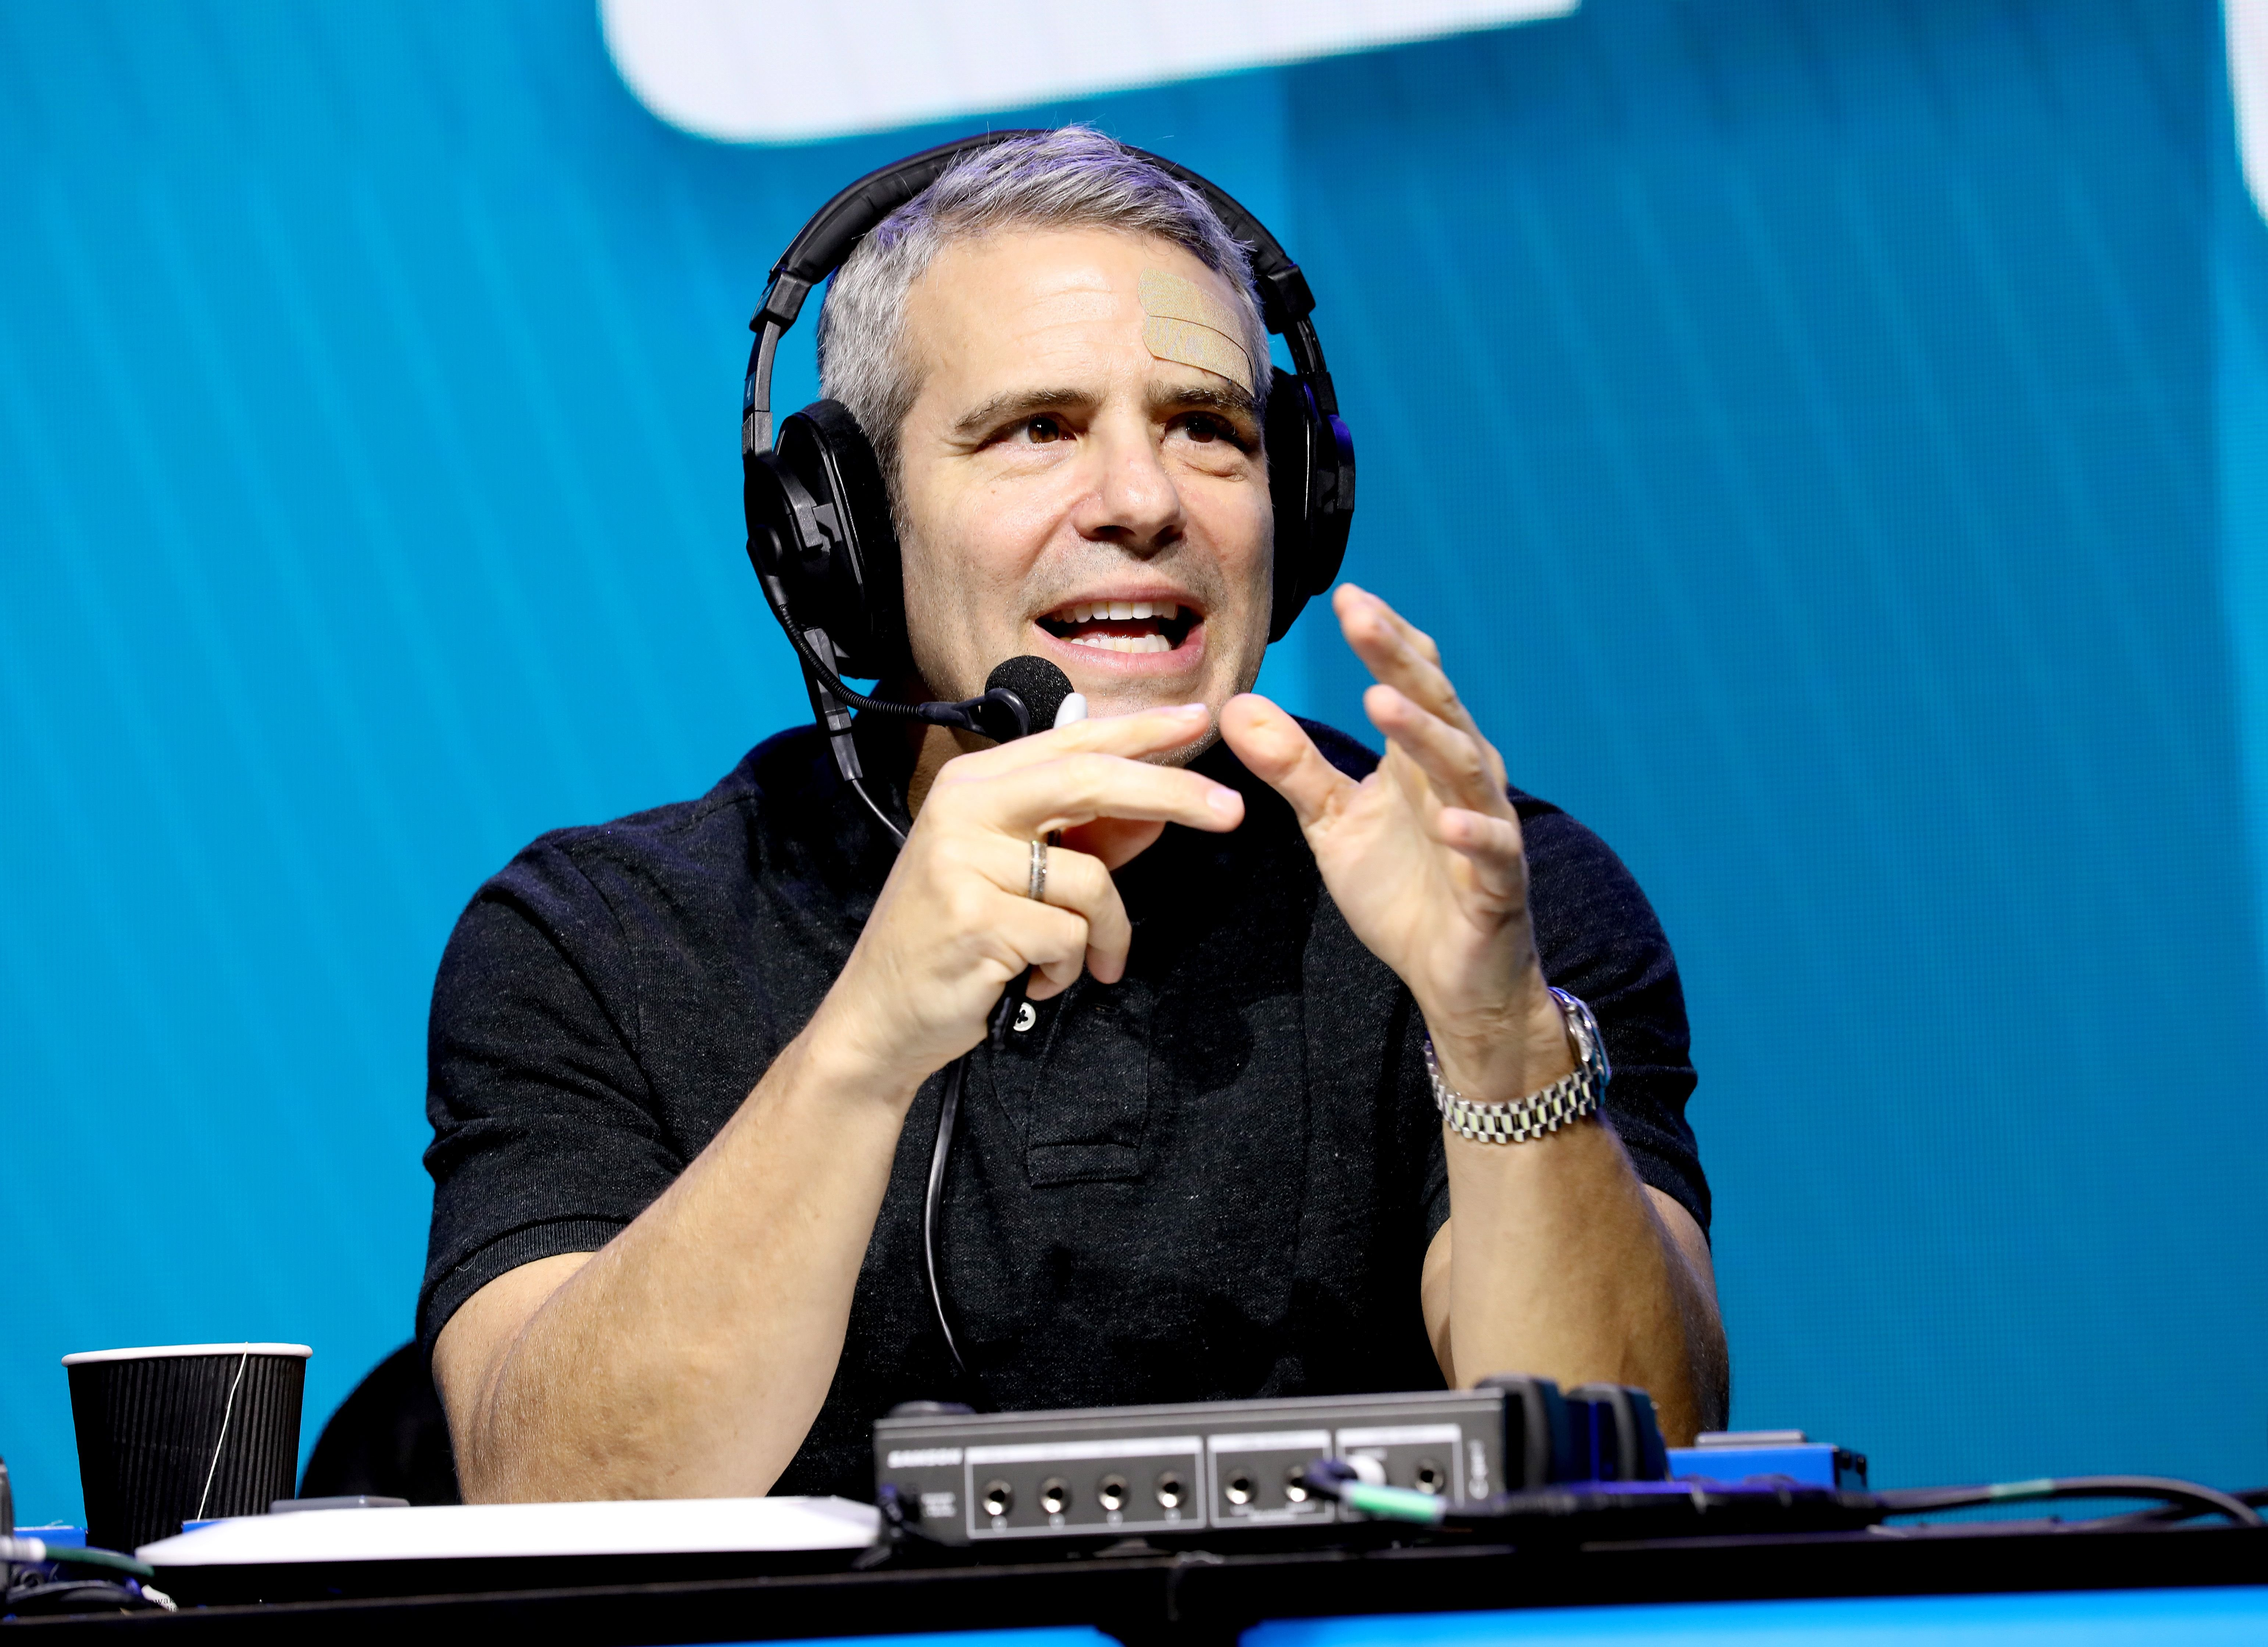 Andy Cohen during the Super Bowl LIV for SiriusXM on January 31, 2020, in Miami, Florida.   Source: Getty Images